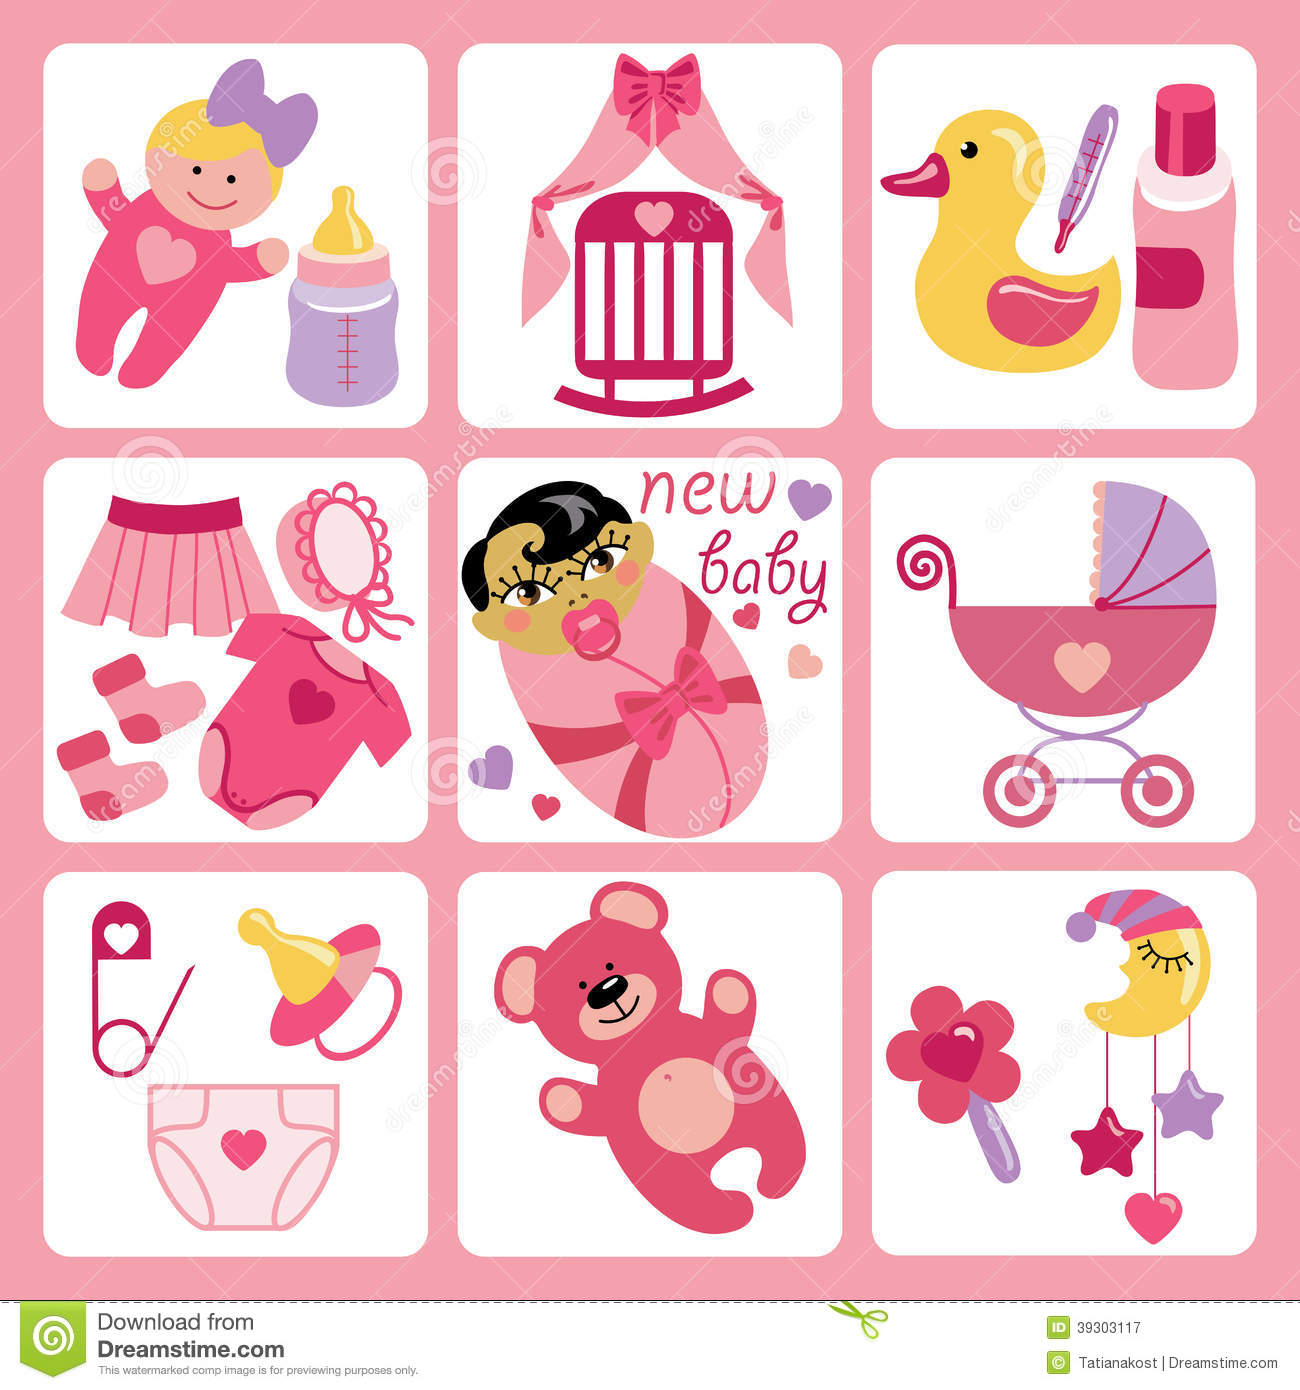 Cute Cartoons Icons For Asian Newborn Baby Girl Stock